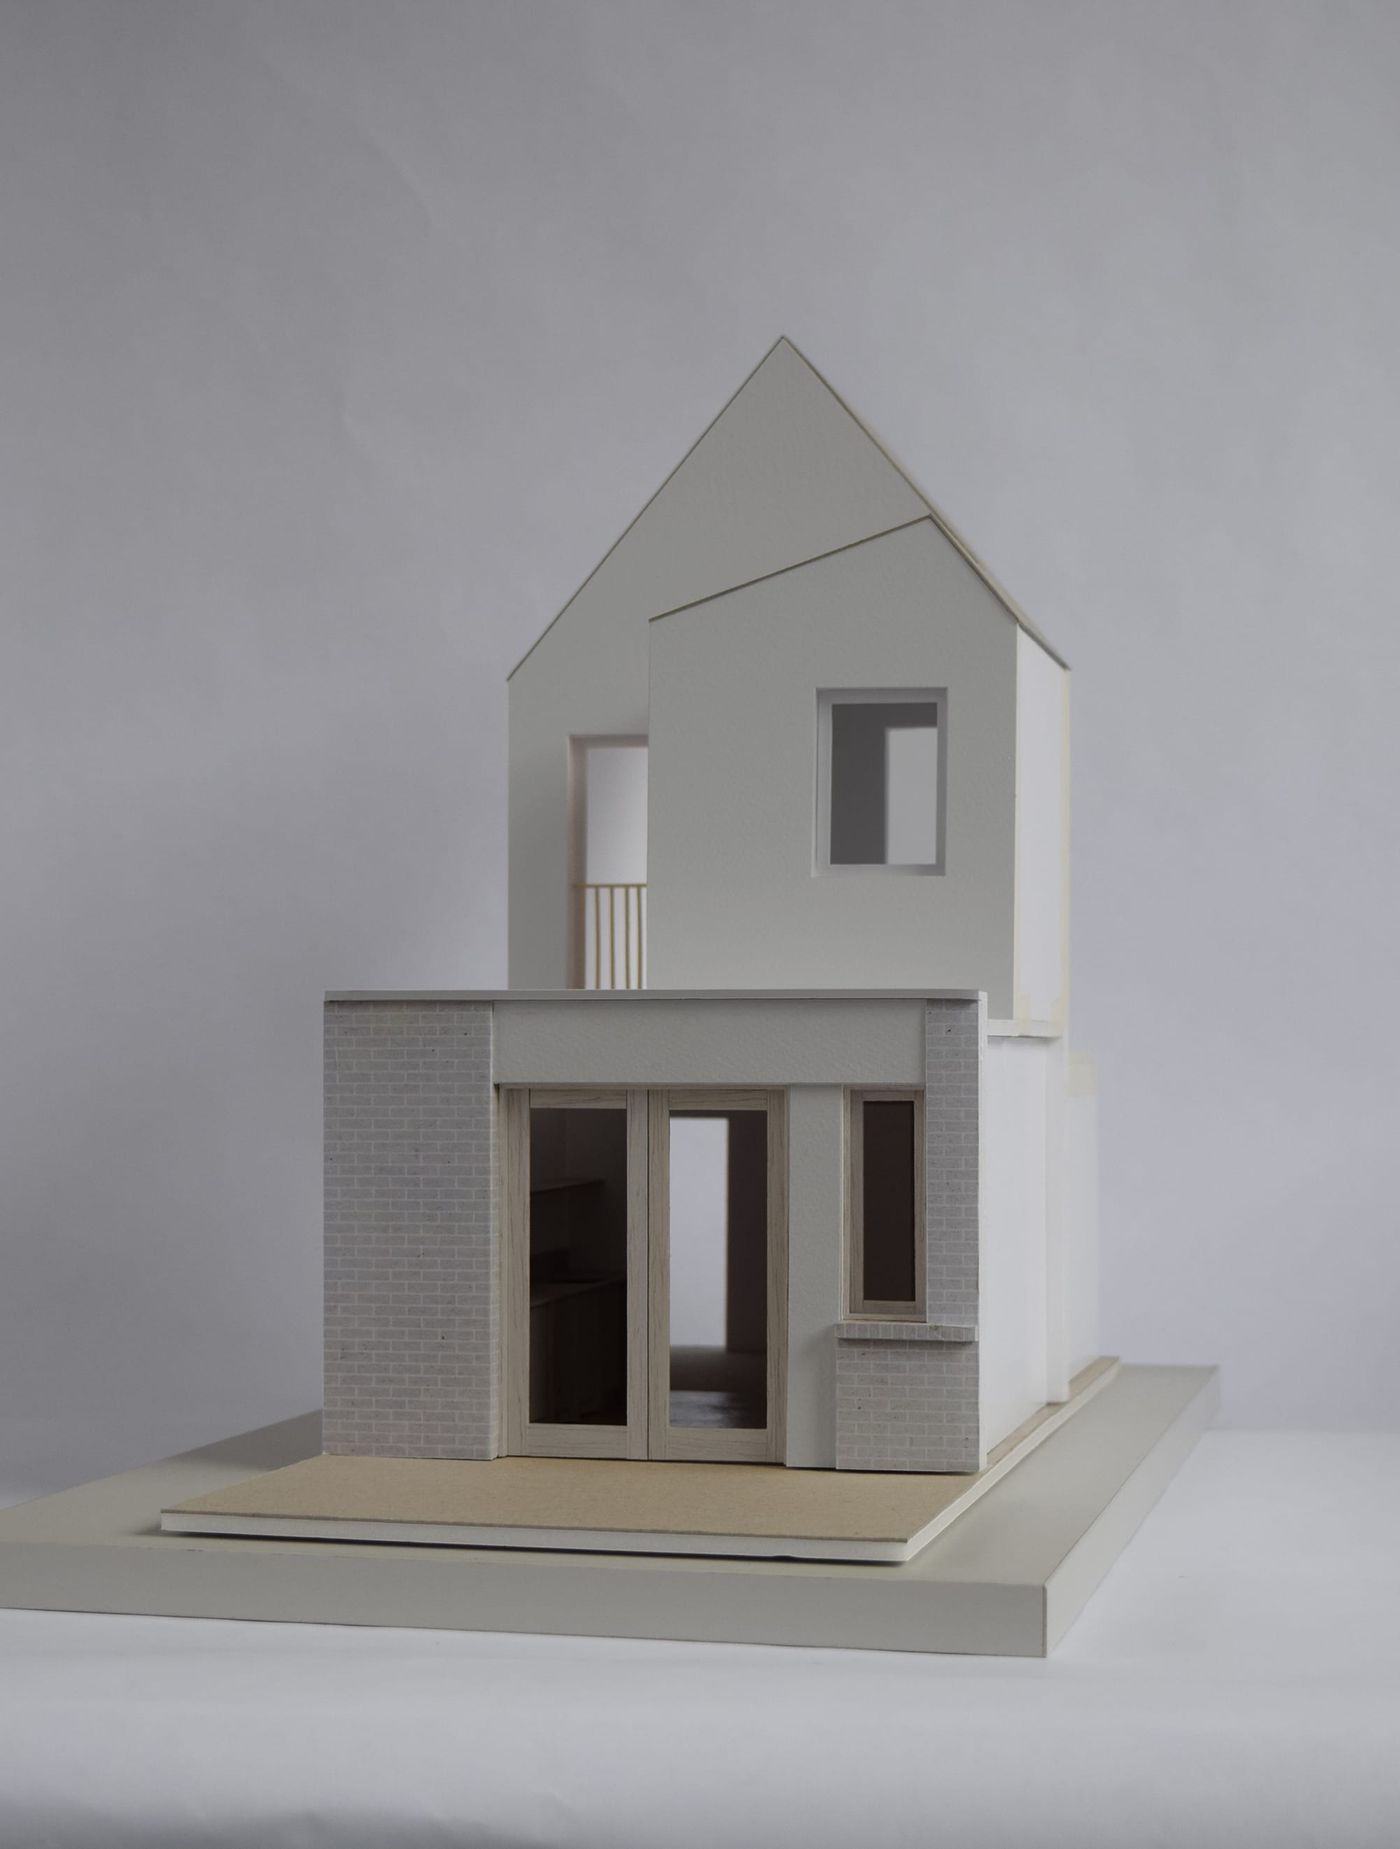 Rear elevation model for From Works' rear extension proposal in South London.